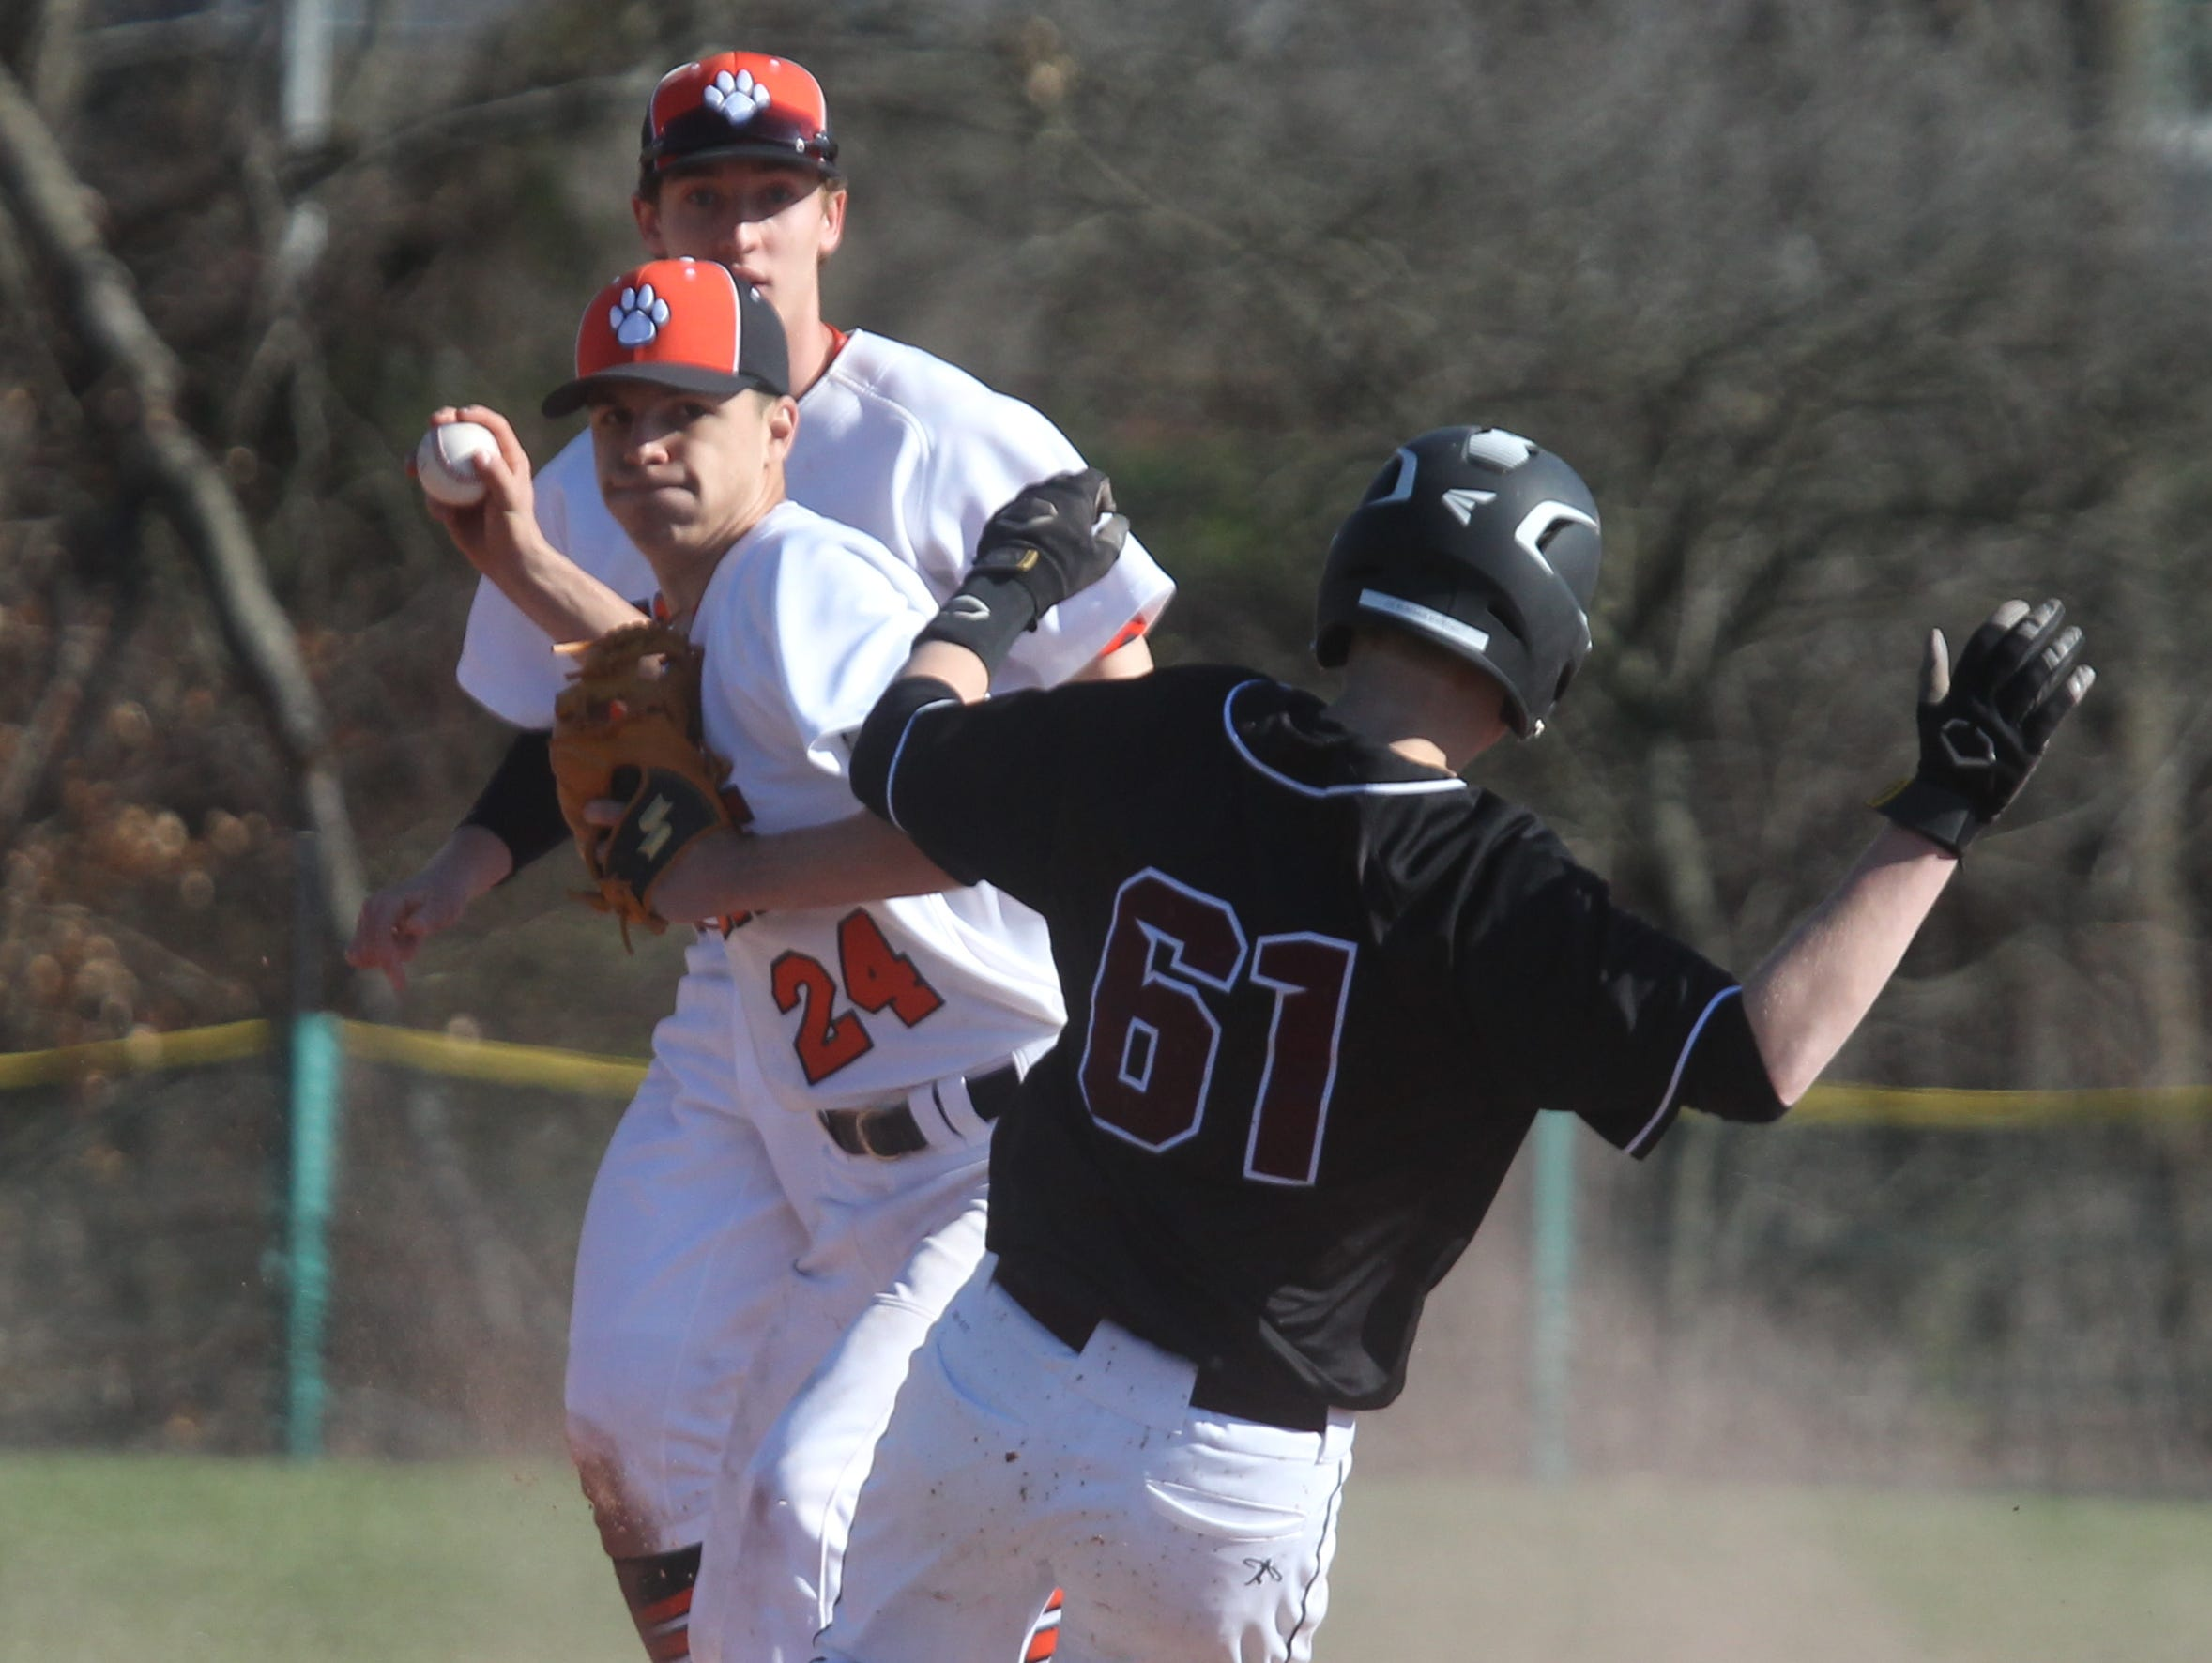 White Plains' Jack Dimarco forces out Scarsdale's Joseph Weintraub, who broke up the double play during a game at White Plains April 12, 2016. White Plains won 7-0.